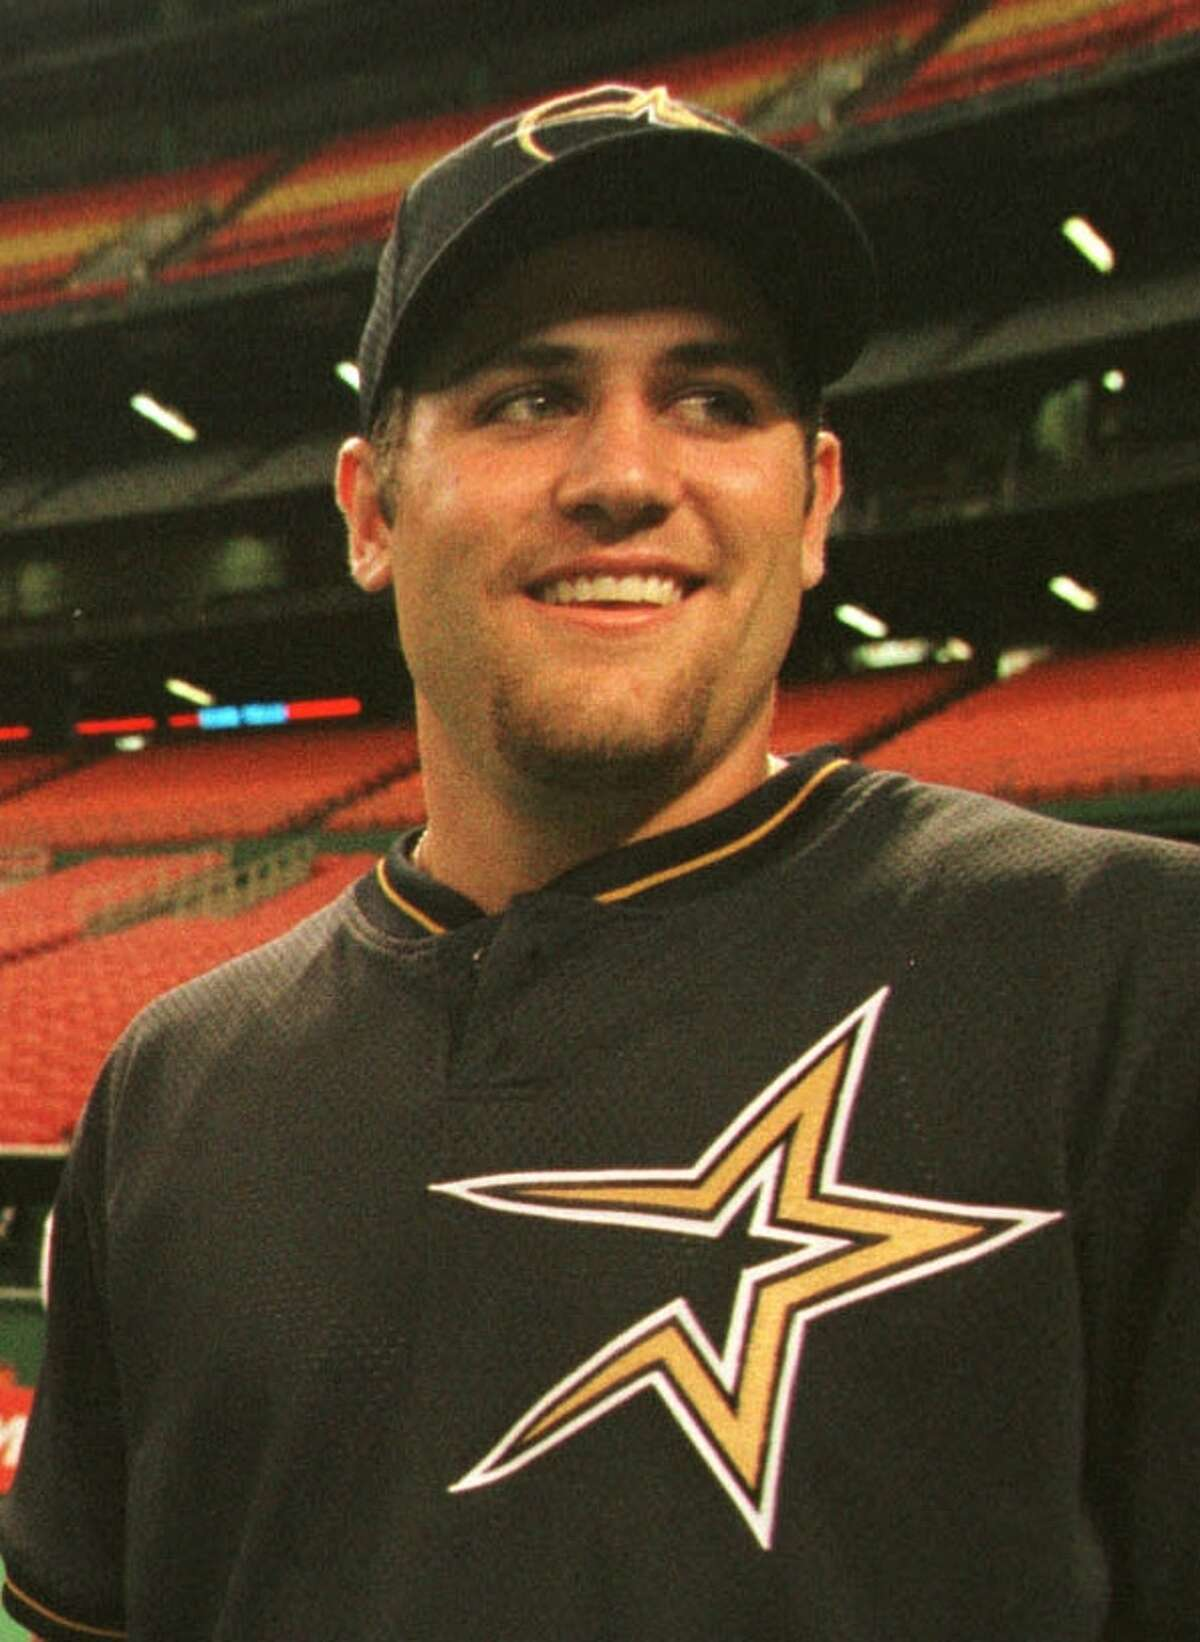 1999 season The Astros selected Berkman with 16th overall pick in the 1997 draft. He made his MLB debut for the team on June 16, 1999. In 34 games, he hit 237 with four homers and 15 RBI.